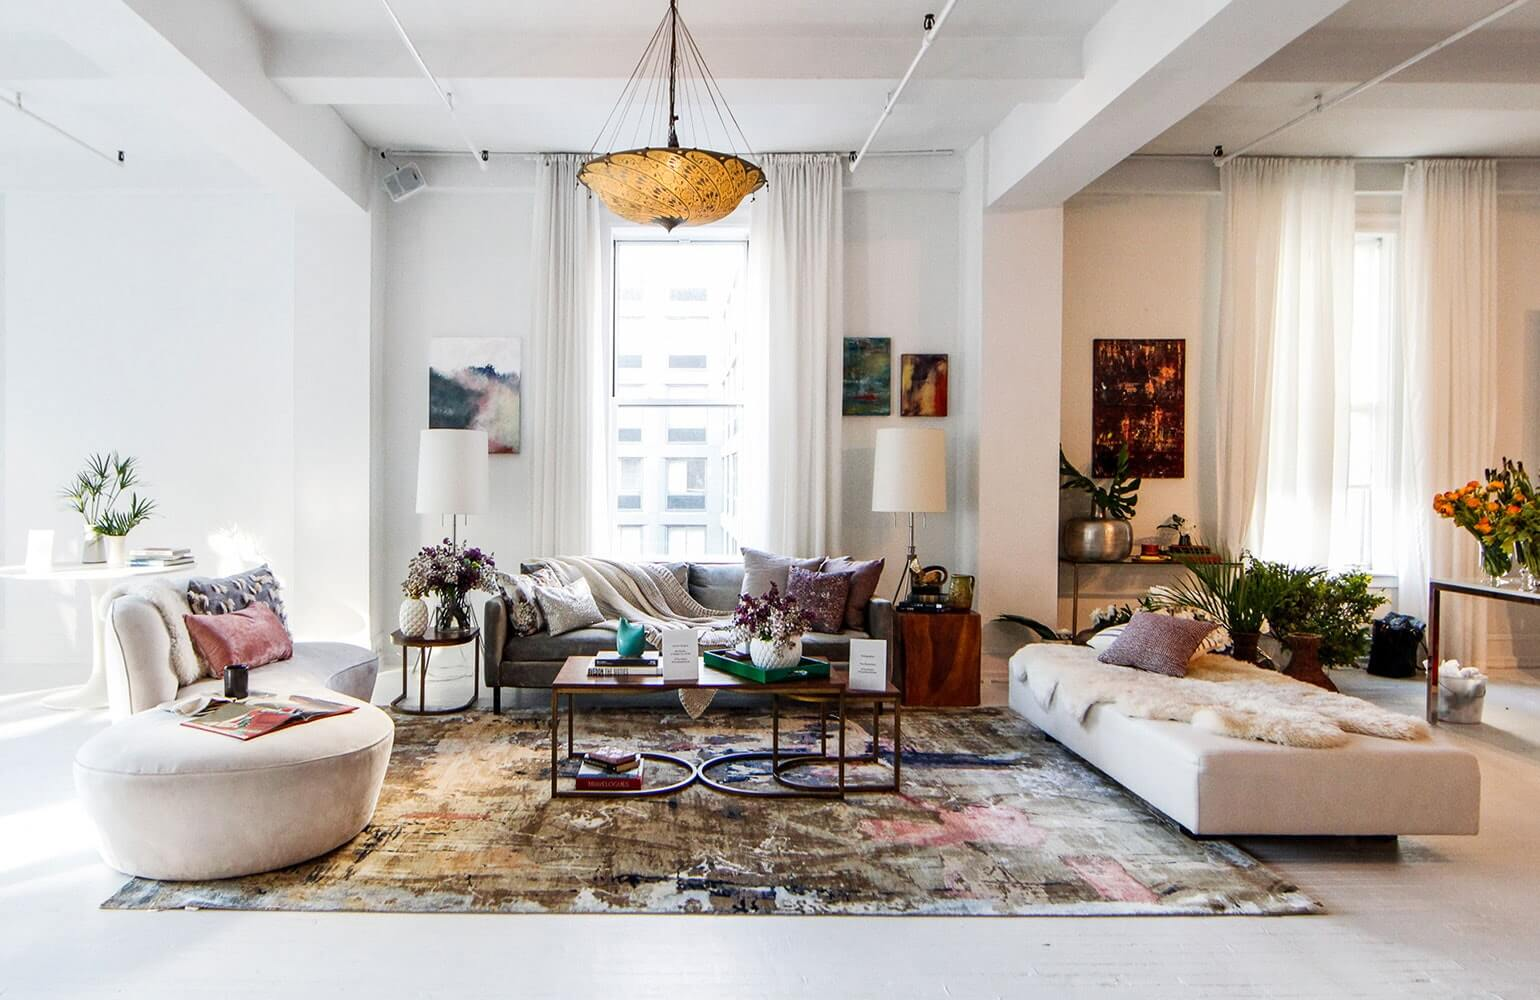 The Best Interior Design Trends In 2018 For Your Beautiful Mansion